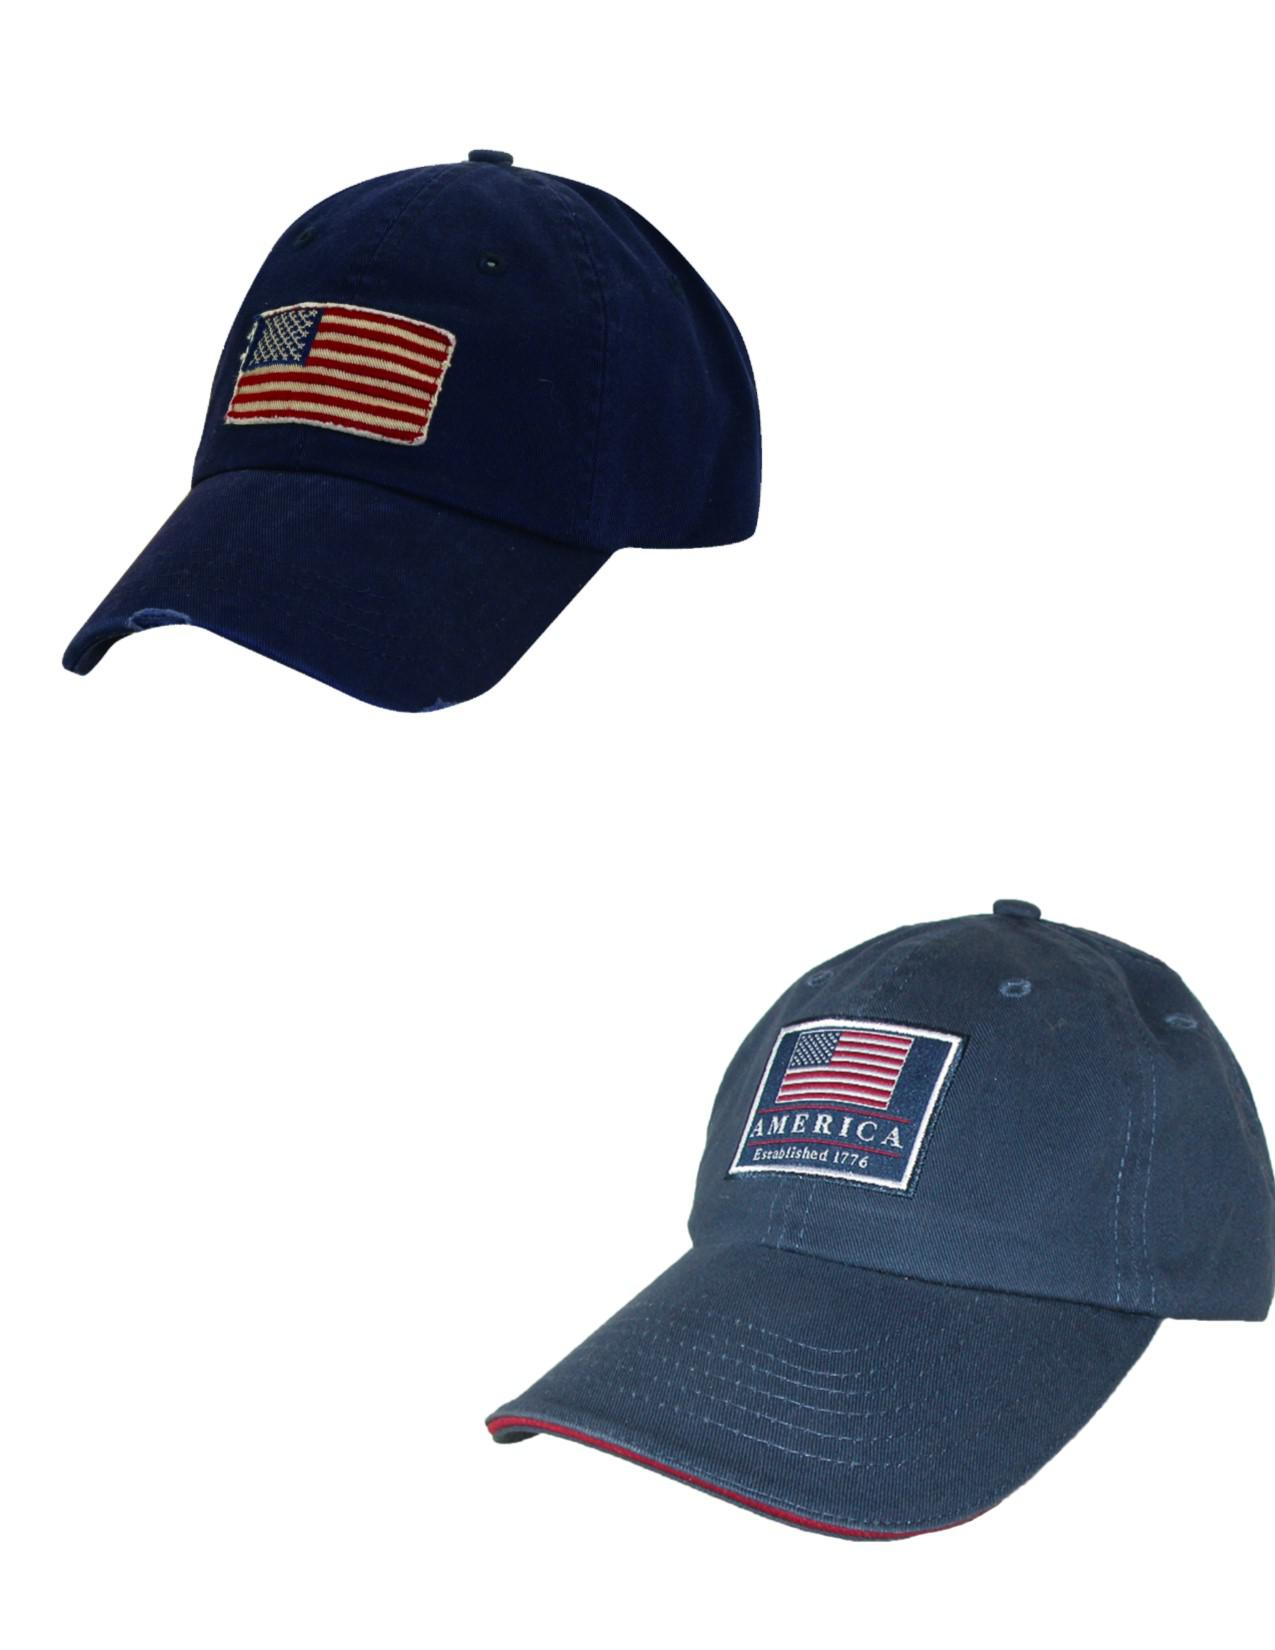 fbea59e8c21 New Dorfman Pacific Cotton Classic American Flag Baseball Caps (Pack ...